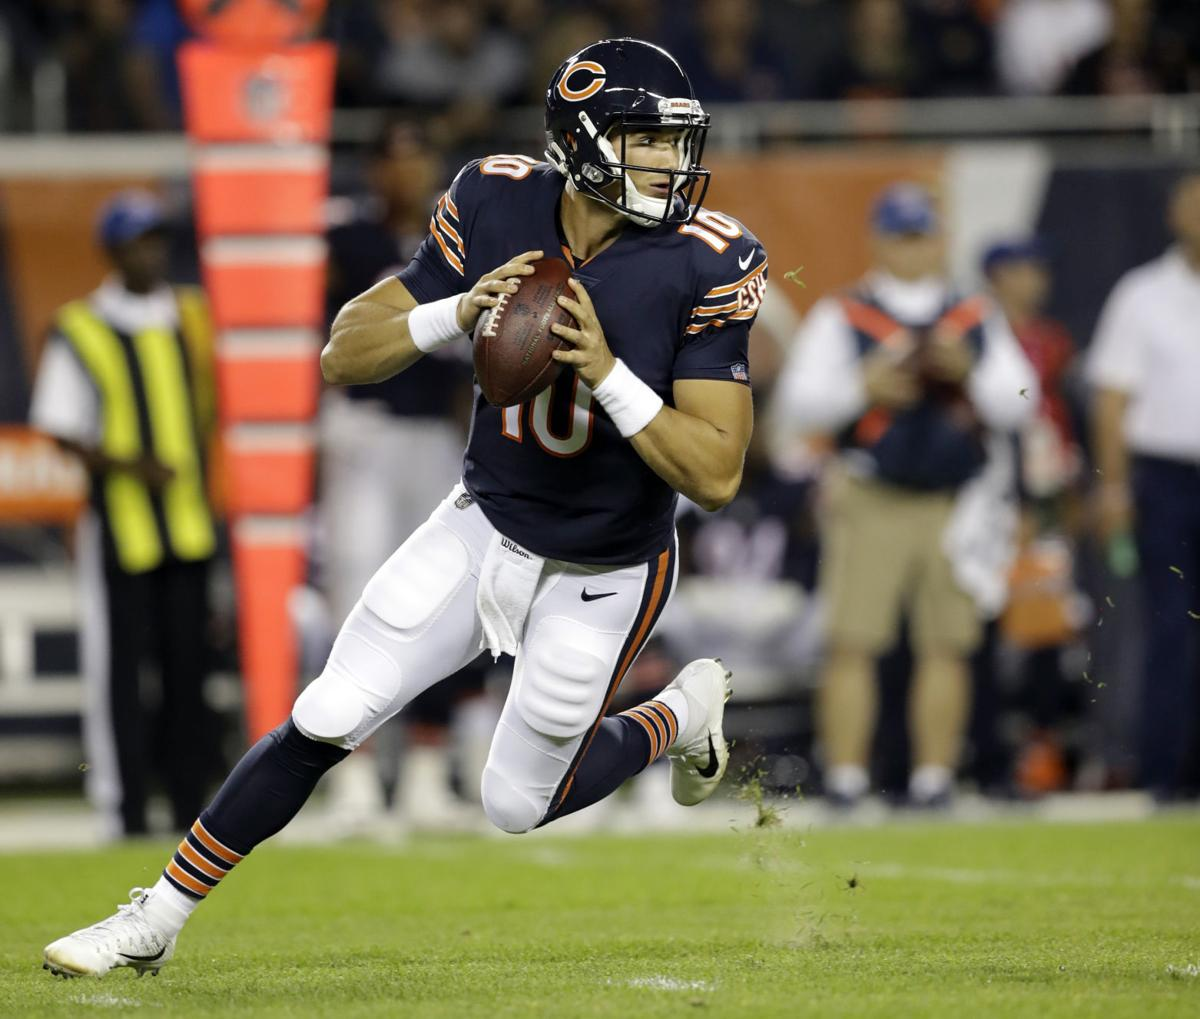 Mitchell Trubisky debut, AP photo